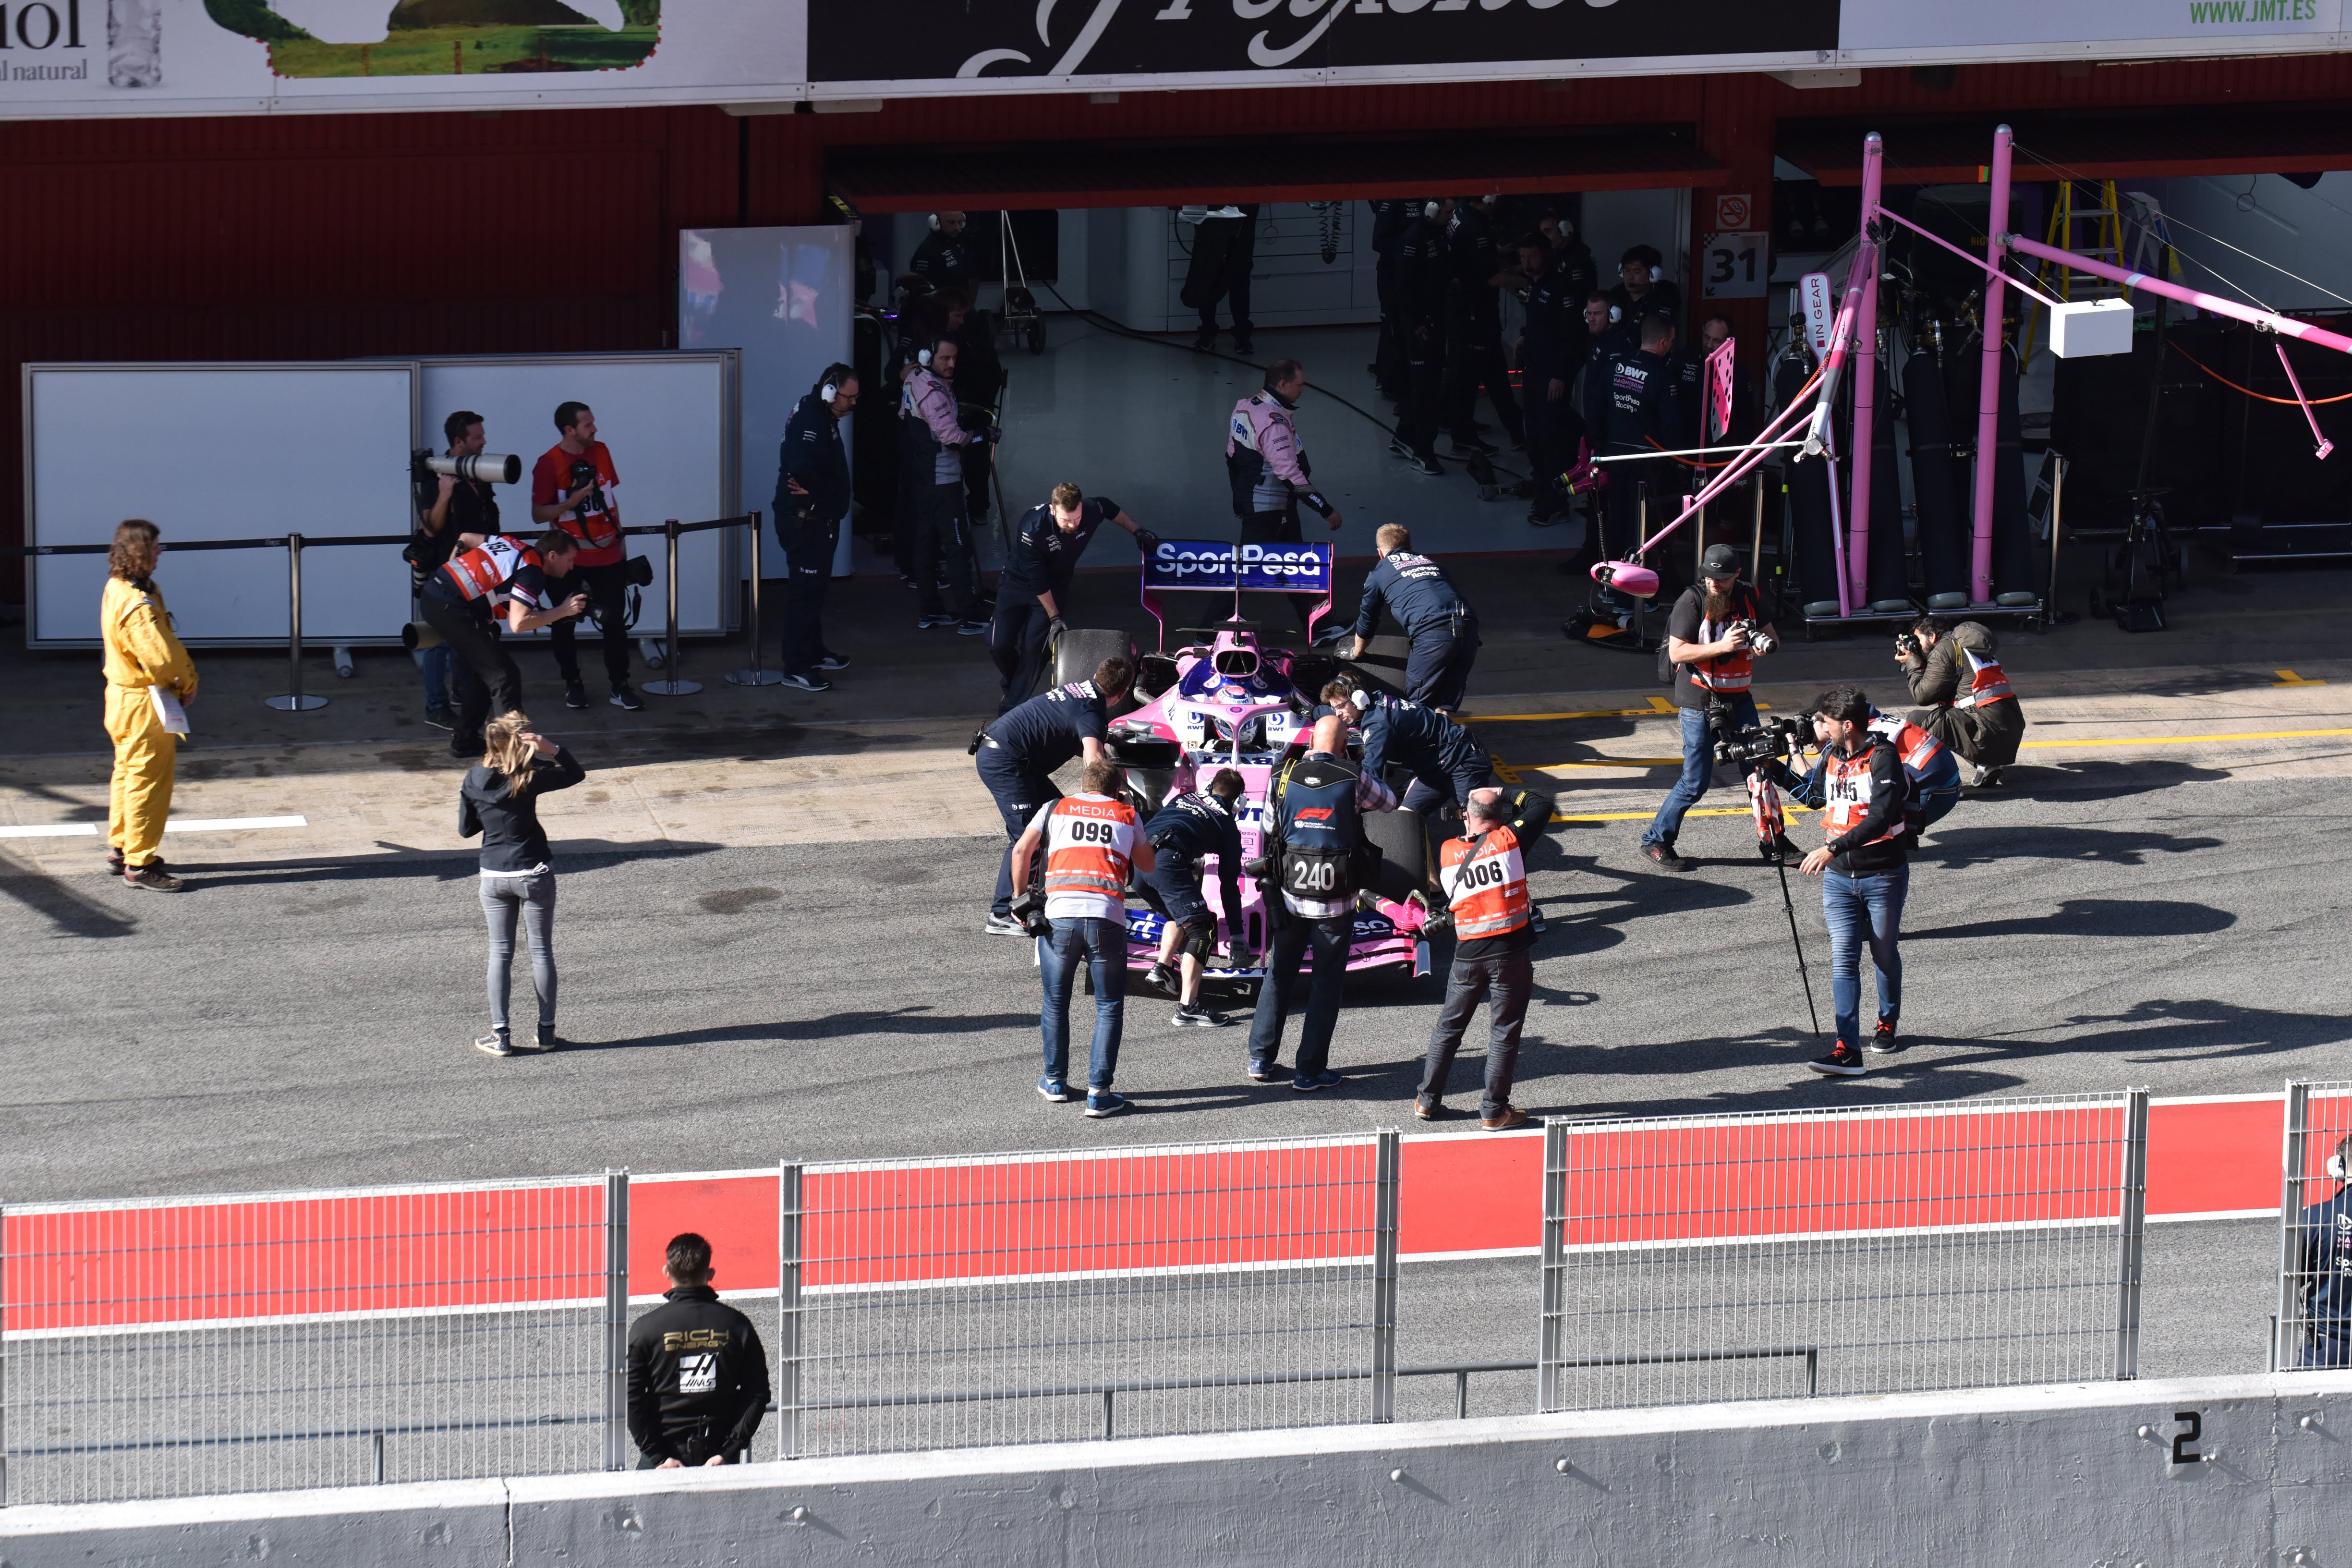 Racing Point RP19 - Team - pitlane - F1 Testing - 2019 - photo by Jacques Denis - Team DESIGNMOTEUR